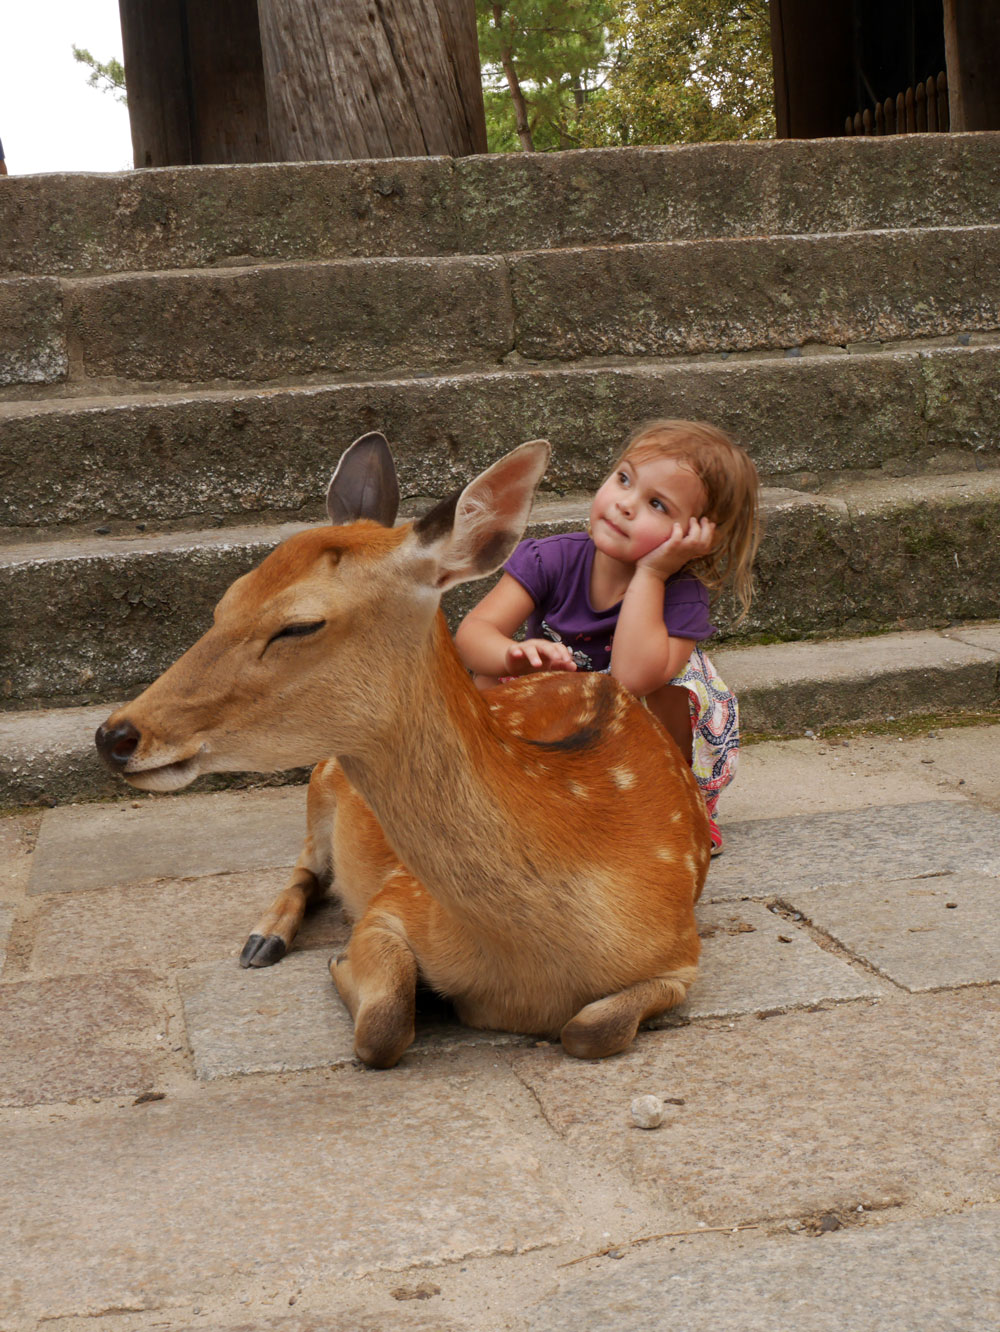 Eve+and+the+deer+Nara.jpeg